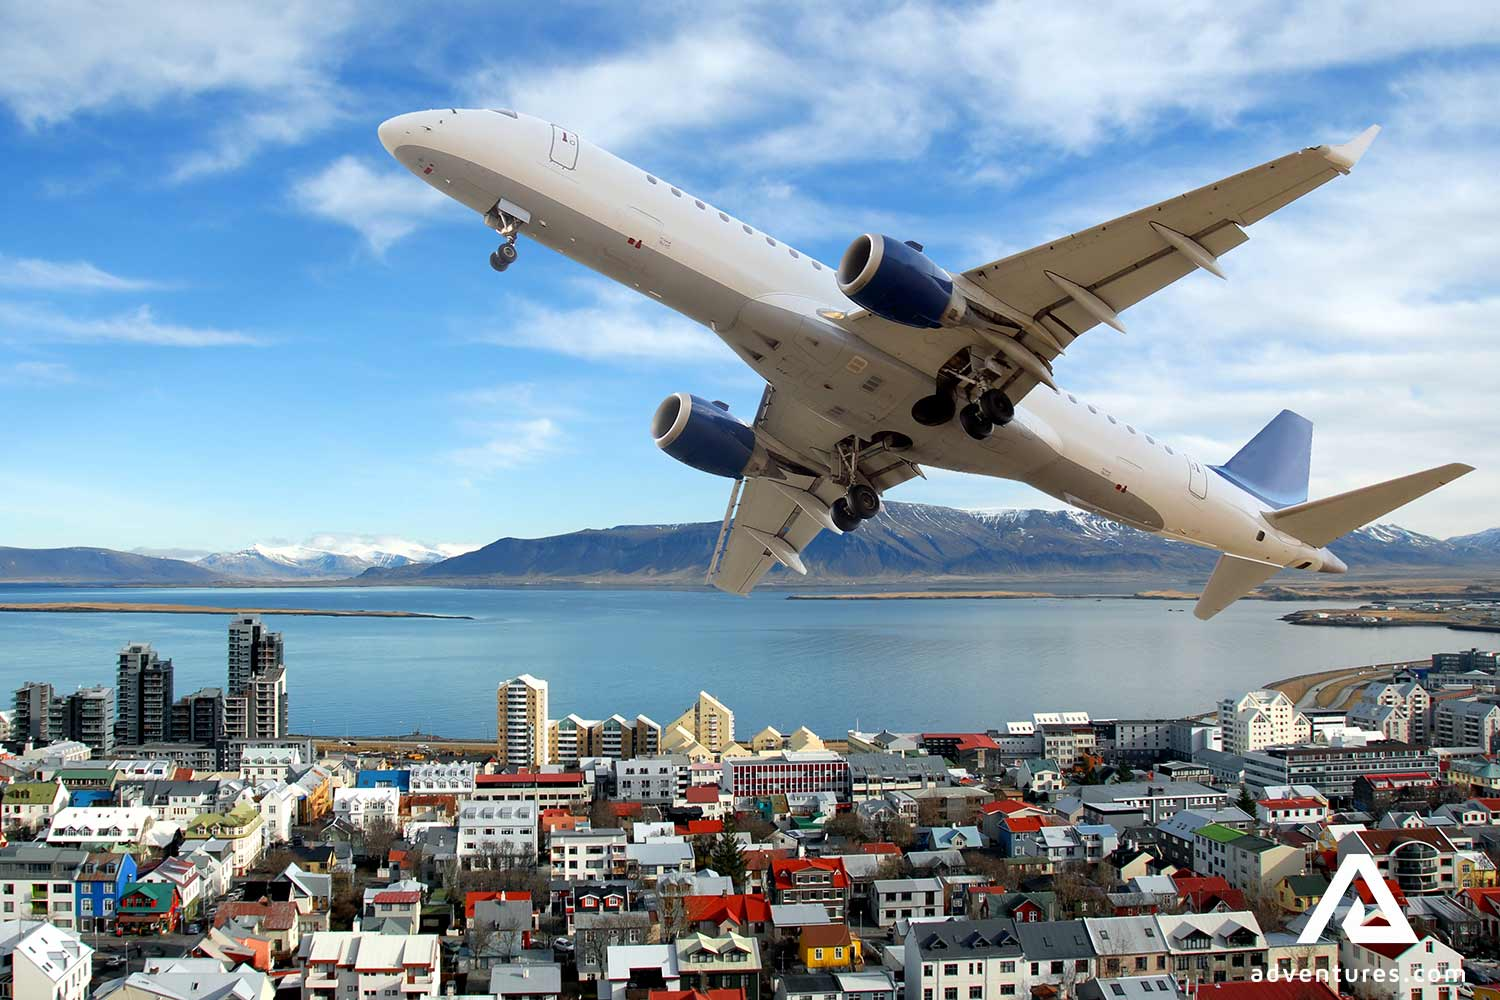 Icelandic Airlines Tours